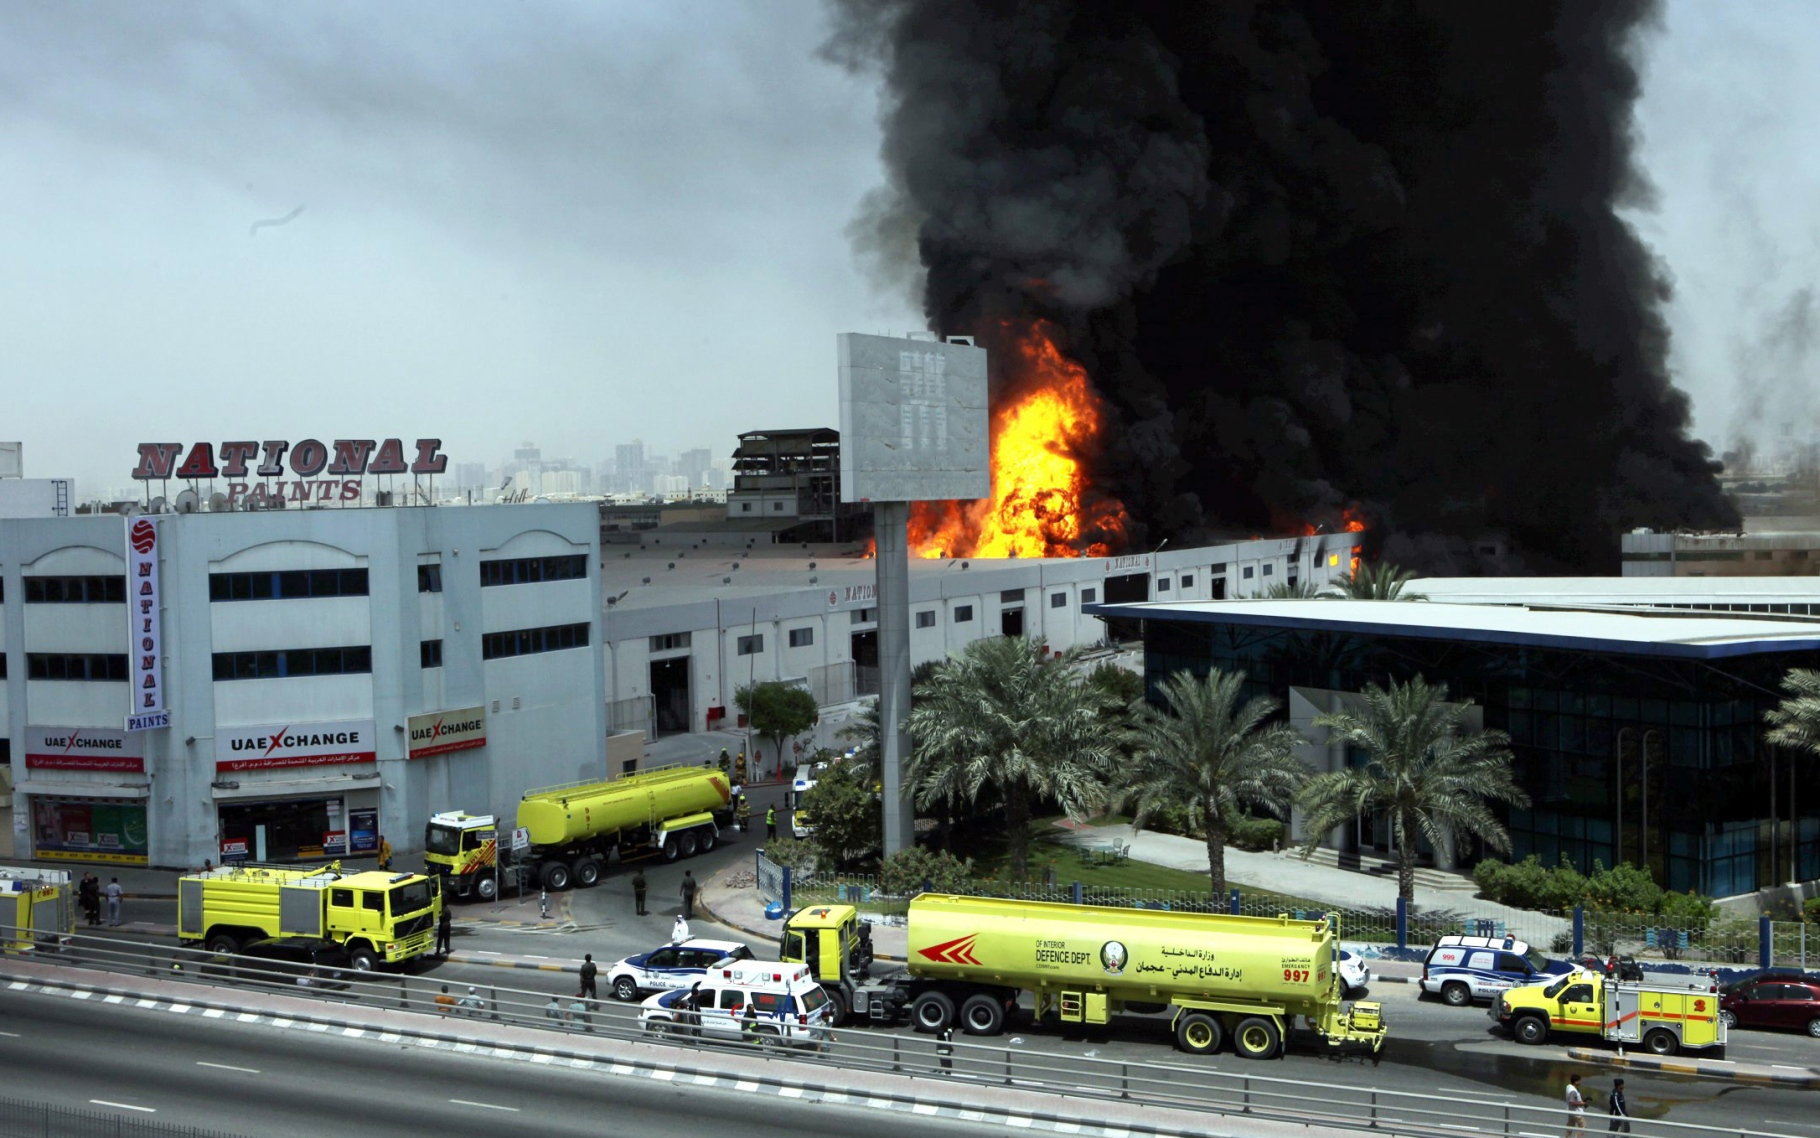 Fire at National Paints plant - Emirates24|7